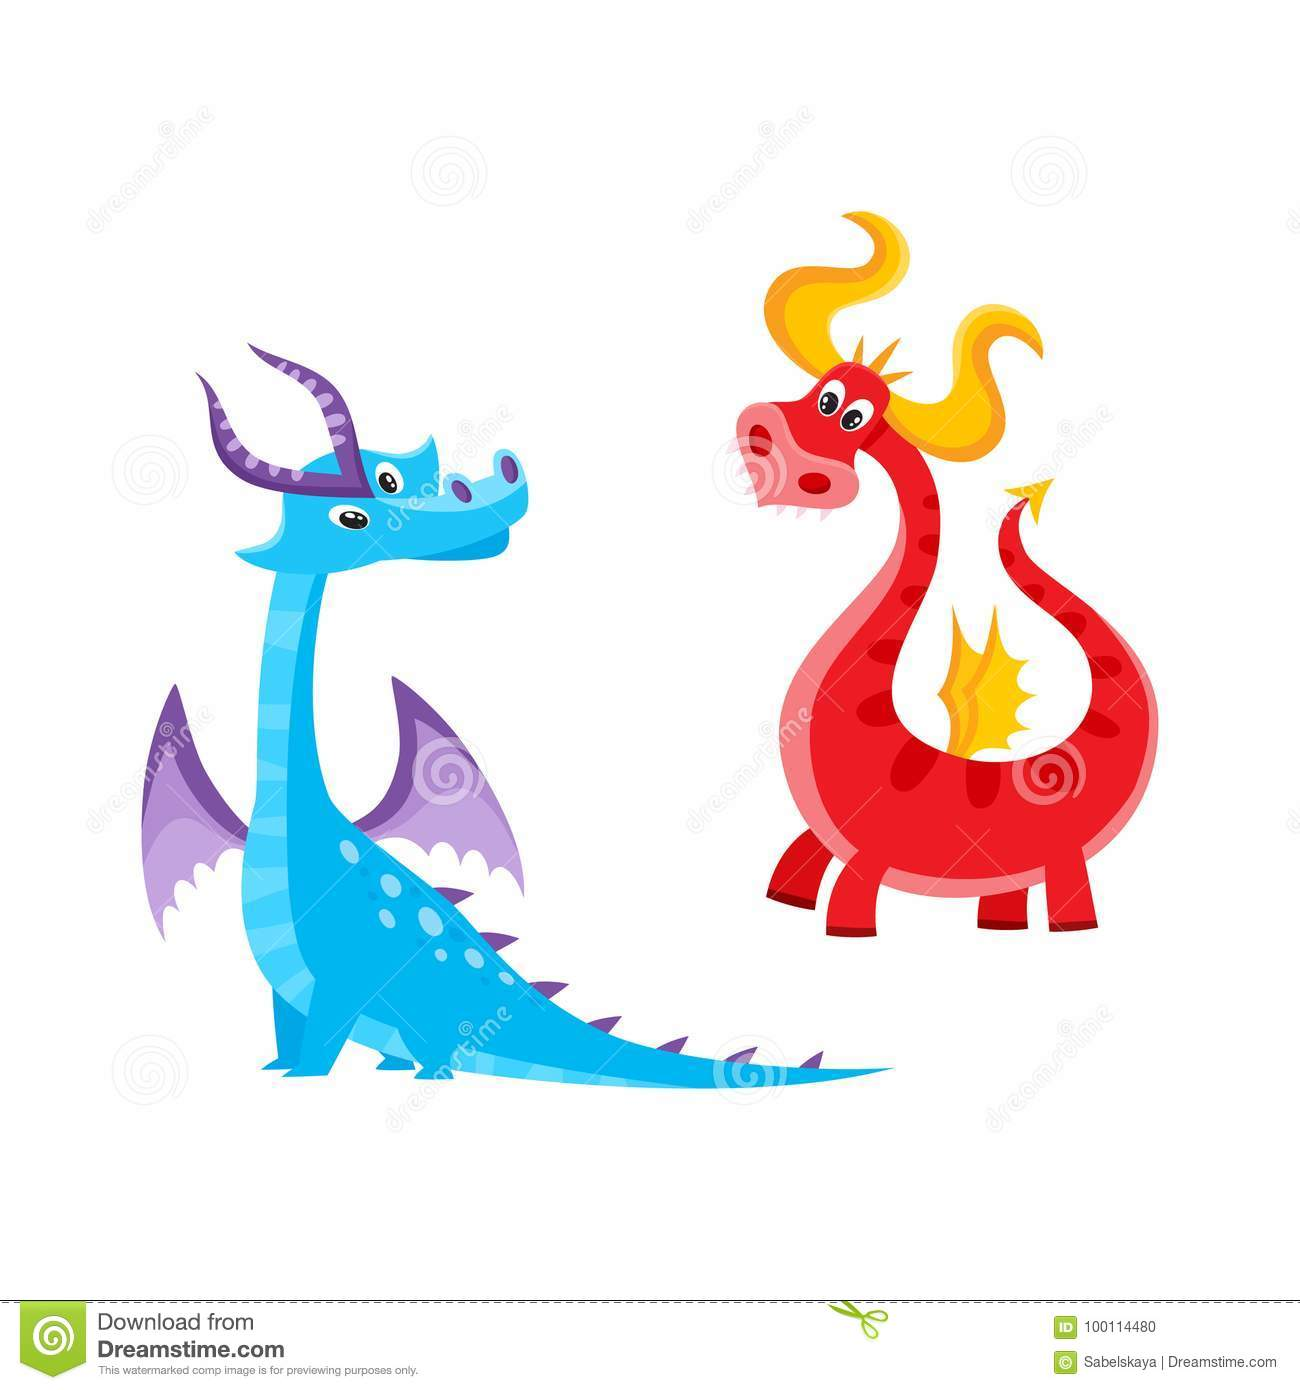 Vector flat cartoon funny blue, marine and red fire adult, mature dragons  with horns and wings. Isolated illustration on a white background.